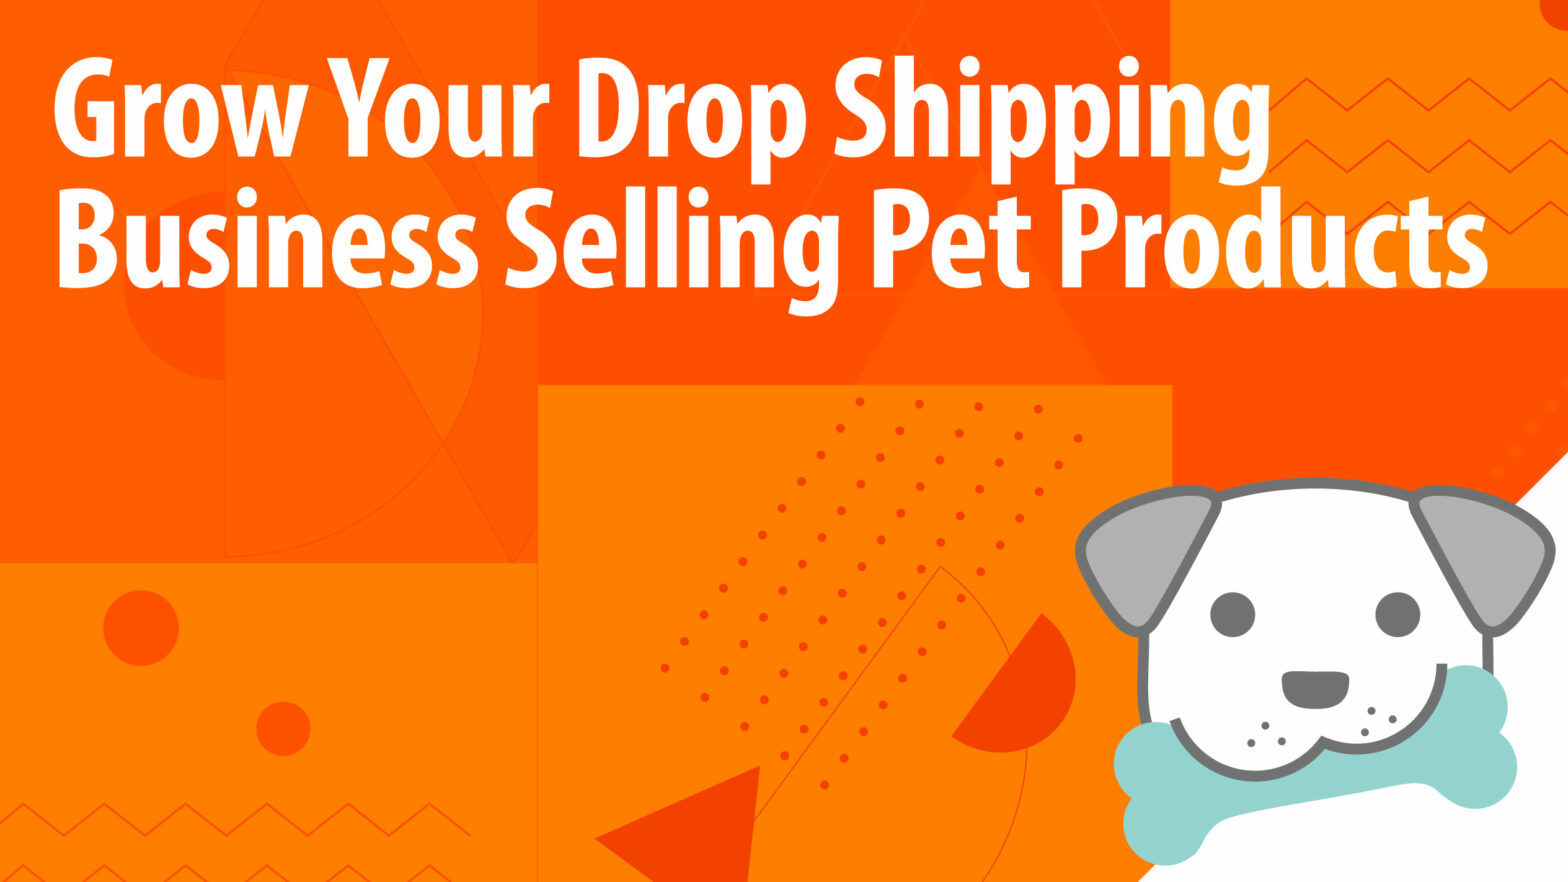 Drop Shipping Pet Products Article Header